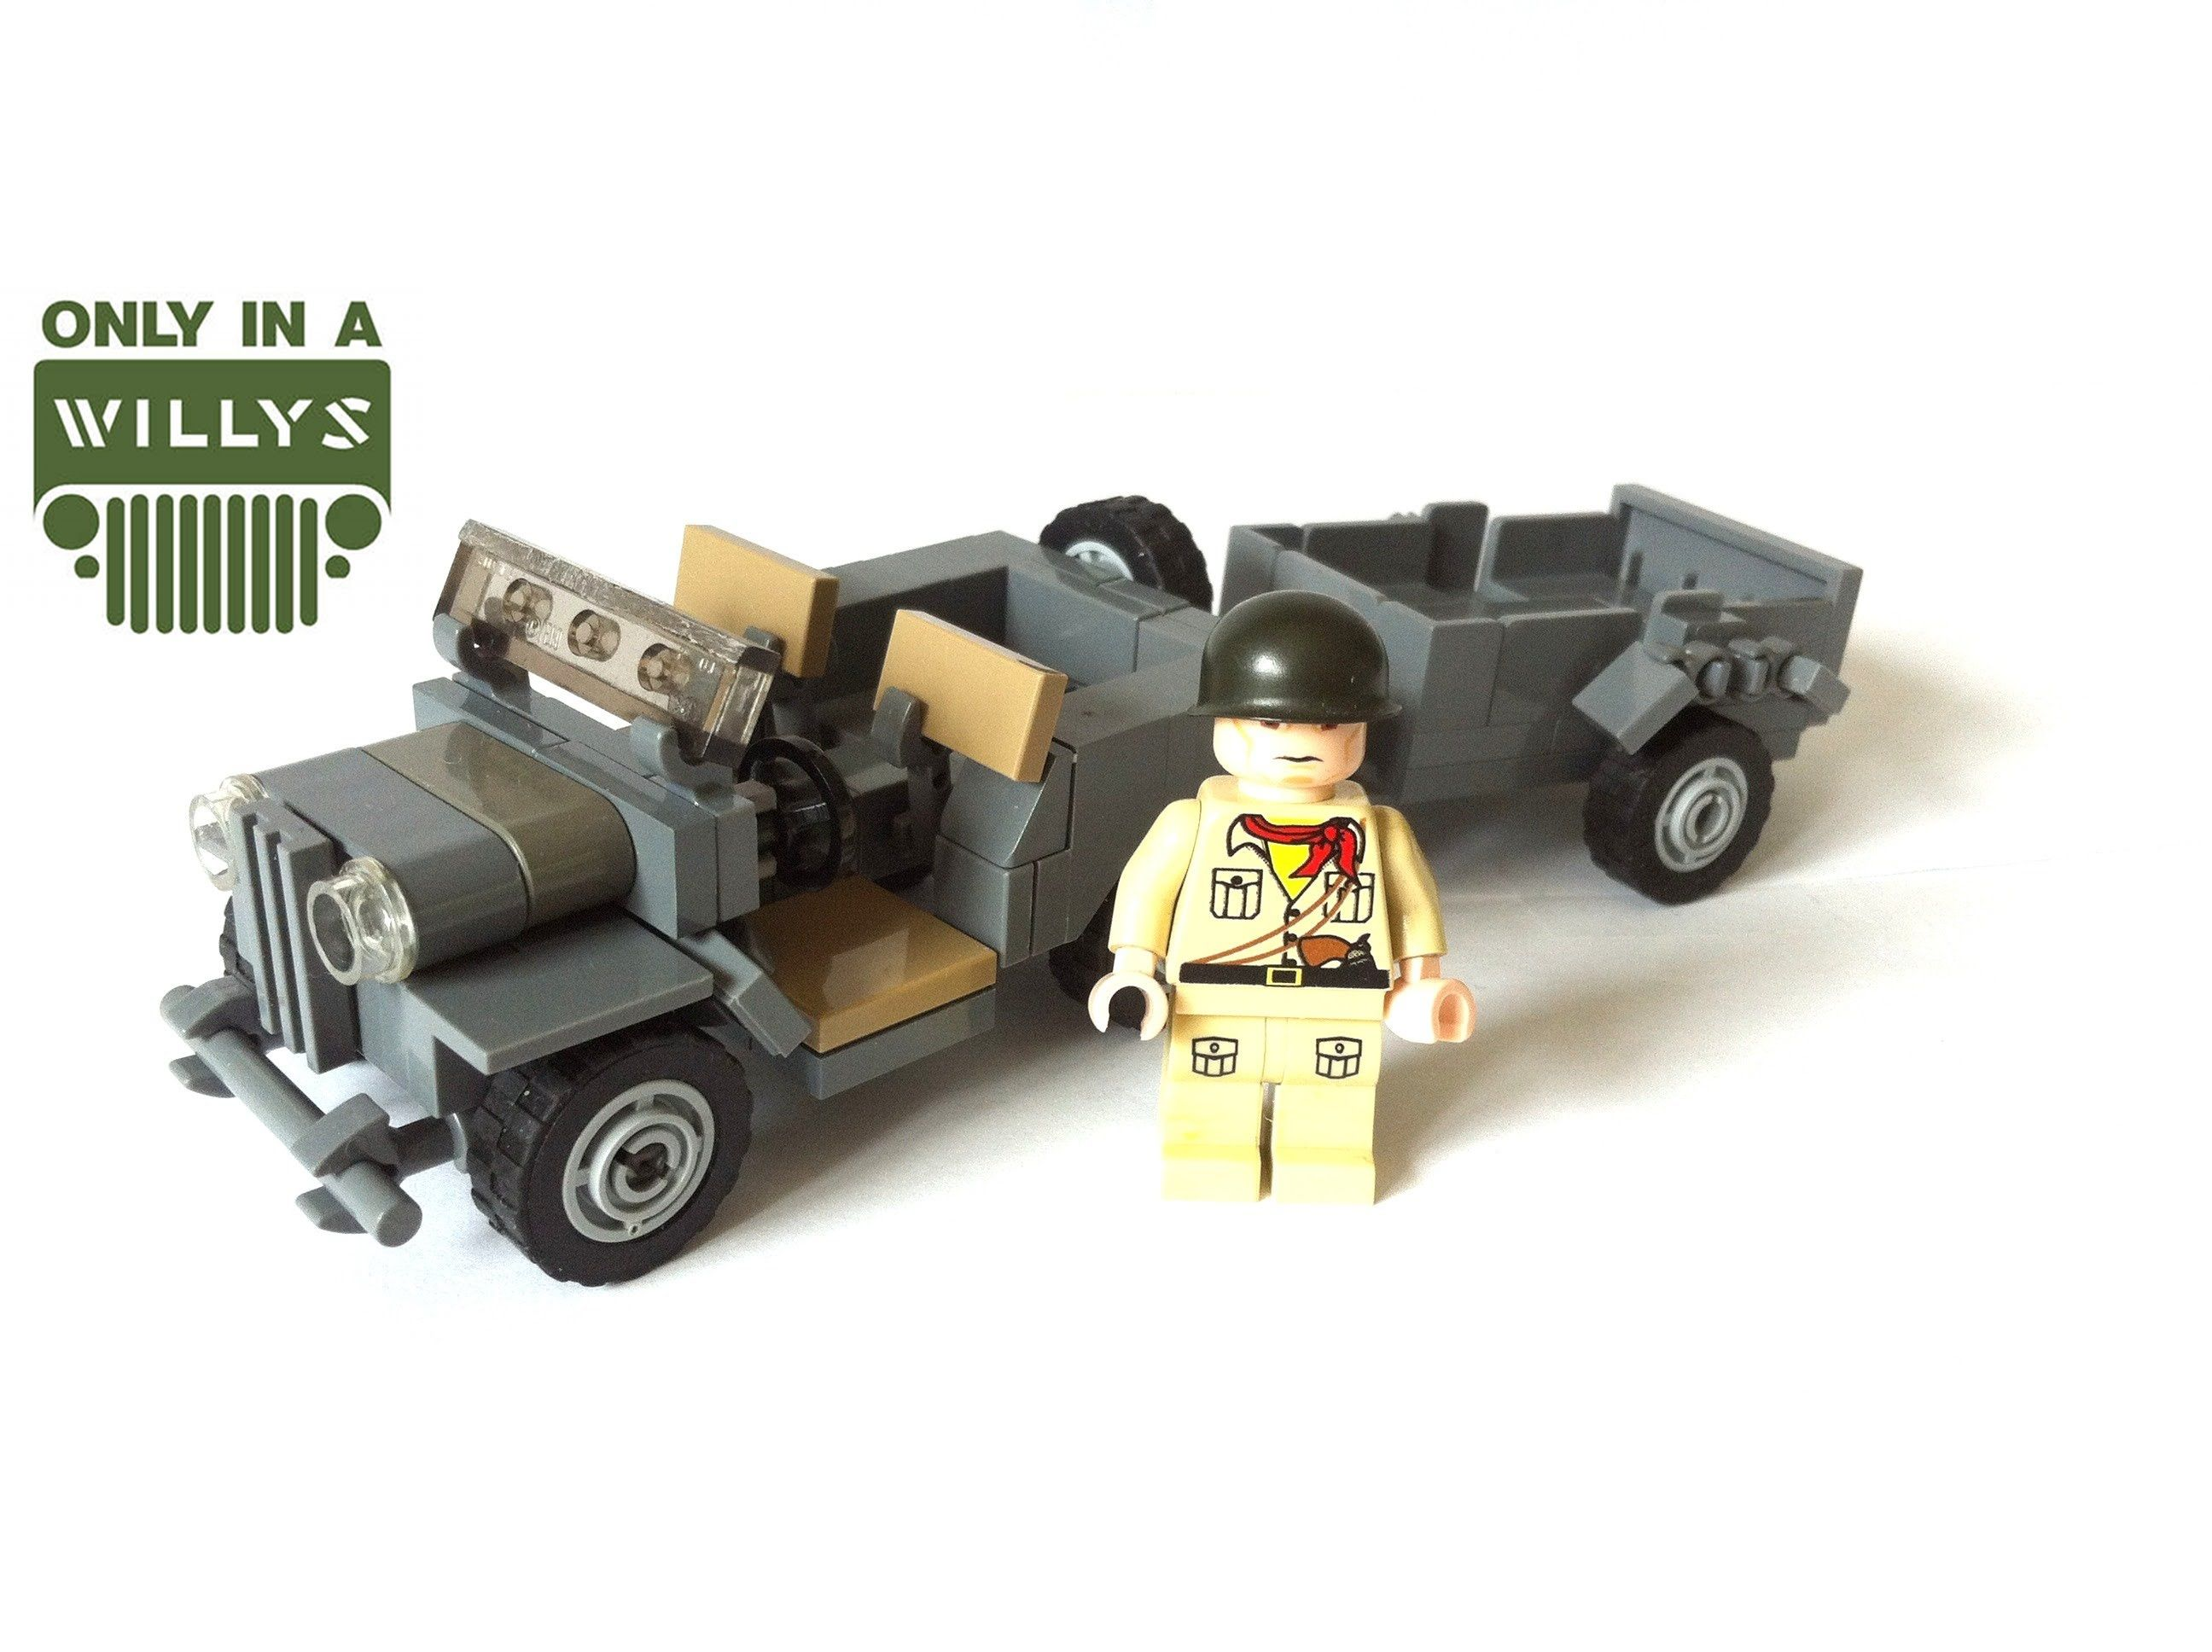 Lego Army Jeep Willys jeep colouring